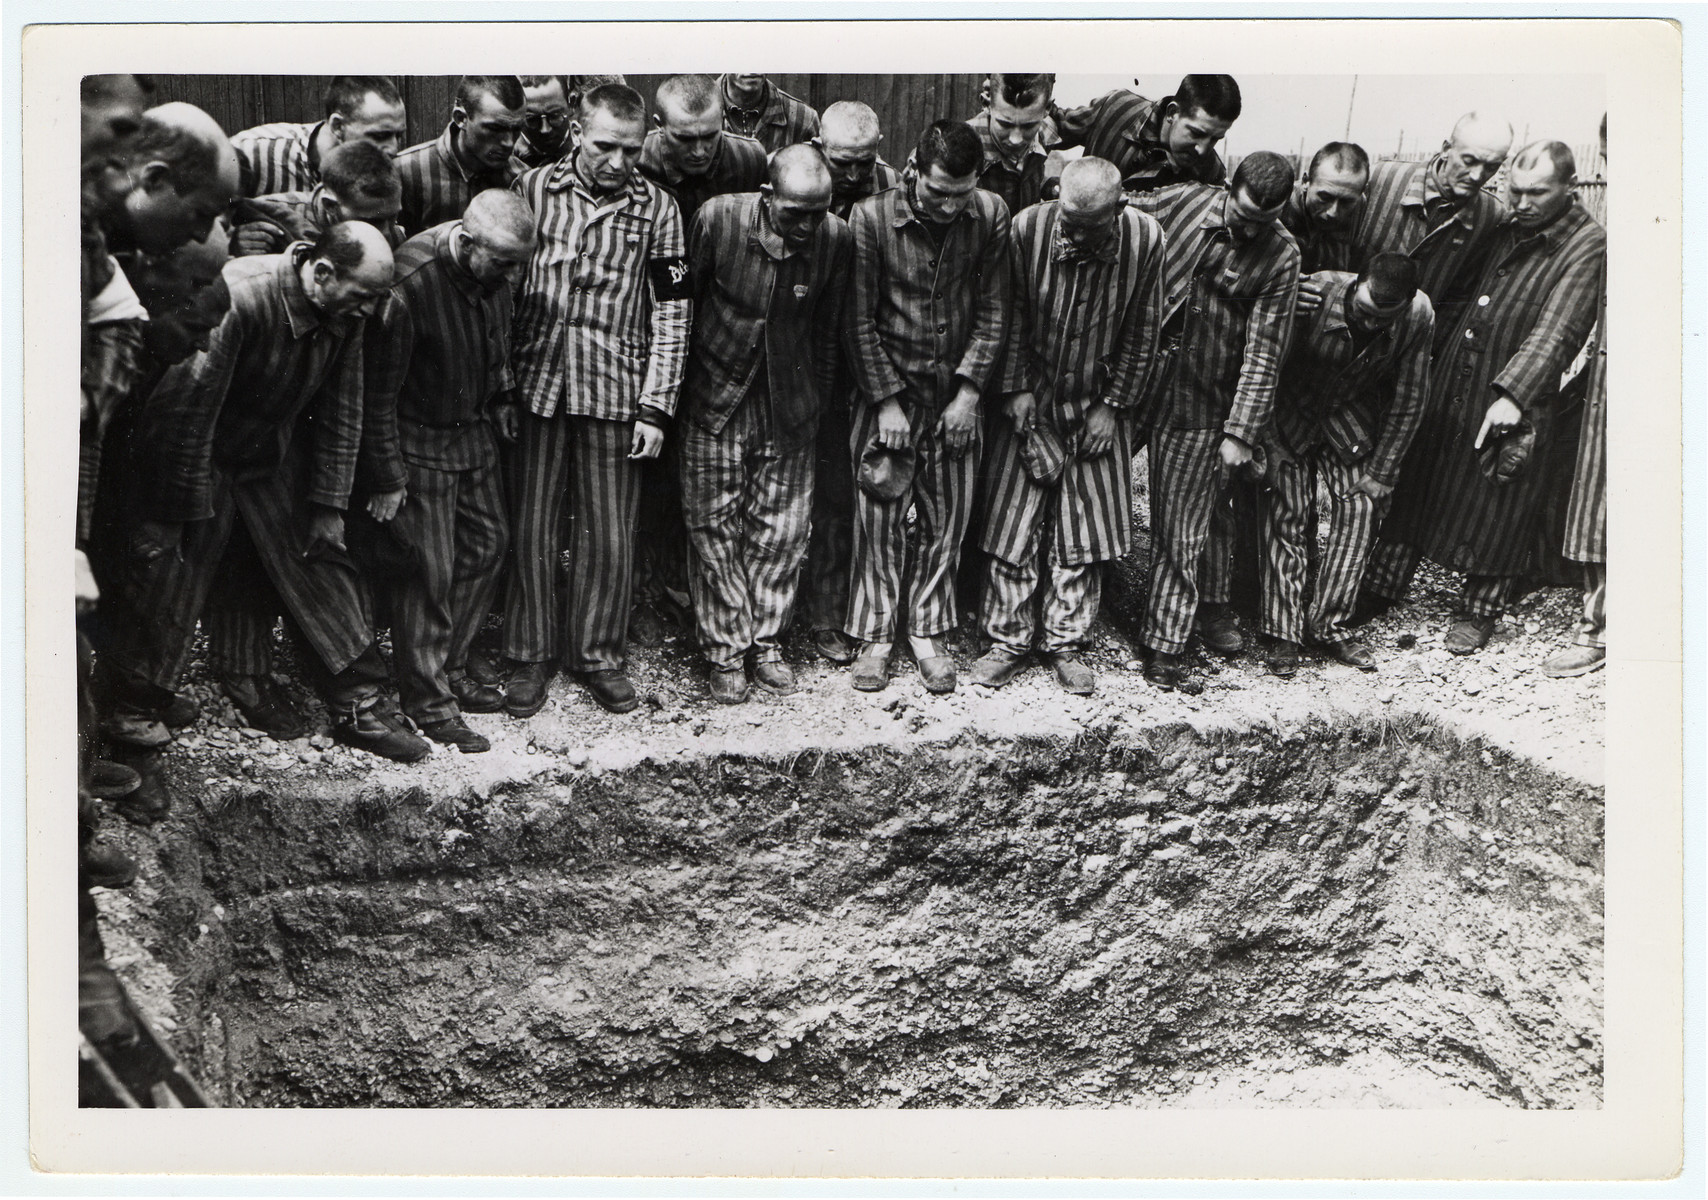 """Newly liberated prisoners stand around a mass grave at Dachau concentration camp.  Original caption reads, """"The prisoners show where they buried some of the comrades everyday, the ones who could not withstand the cruel treatment and starvation diet handed out by their German keepers. Feet and partially covered head protrude from under the dirt in this mass burial pit."""""""